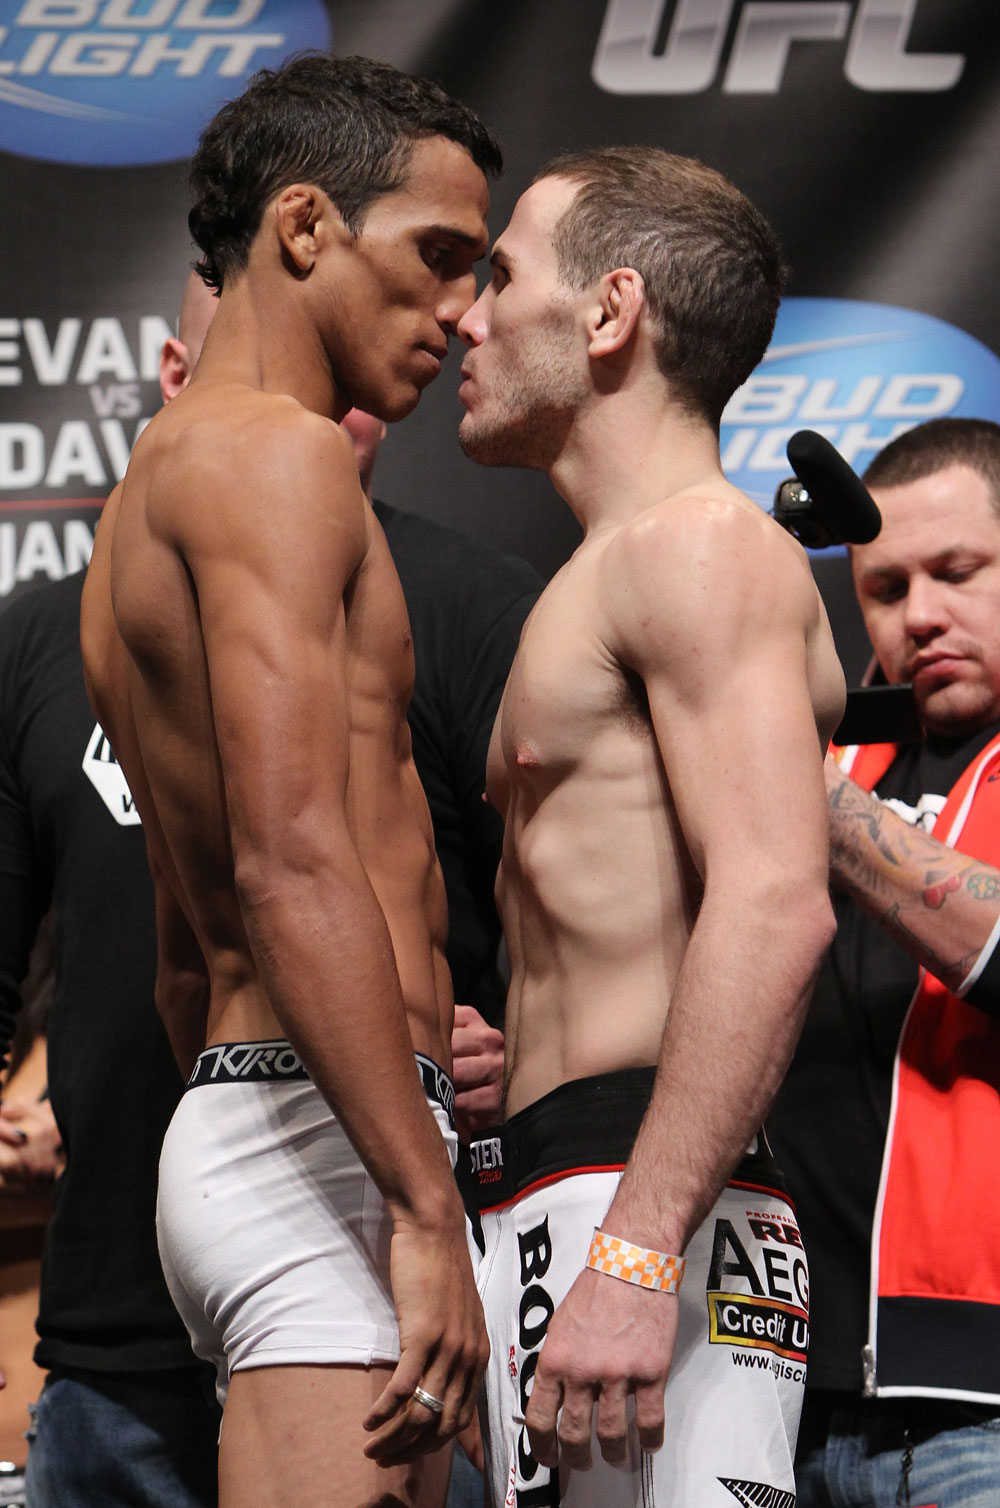 CHICAGO, IL - JANUARY 27:  (L-R) Featherweight opponents Charles Oliveira and Eric Wisely face off after weighing in during the UFC on FOX official weigh in at the Chicago Theatre on January 27, 2012 in Chicago, Illinois.  (Photo by Josh Hedges/Zuffa LLC/Zuffa LLC via Getty Images) *** Local Caption *** Charles Oliveira; Eric Wisely